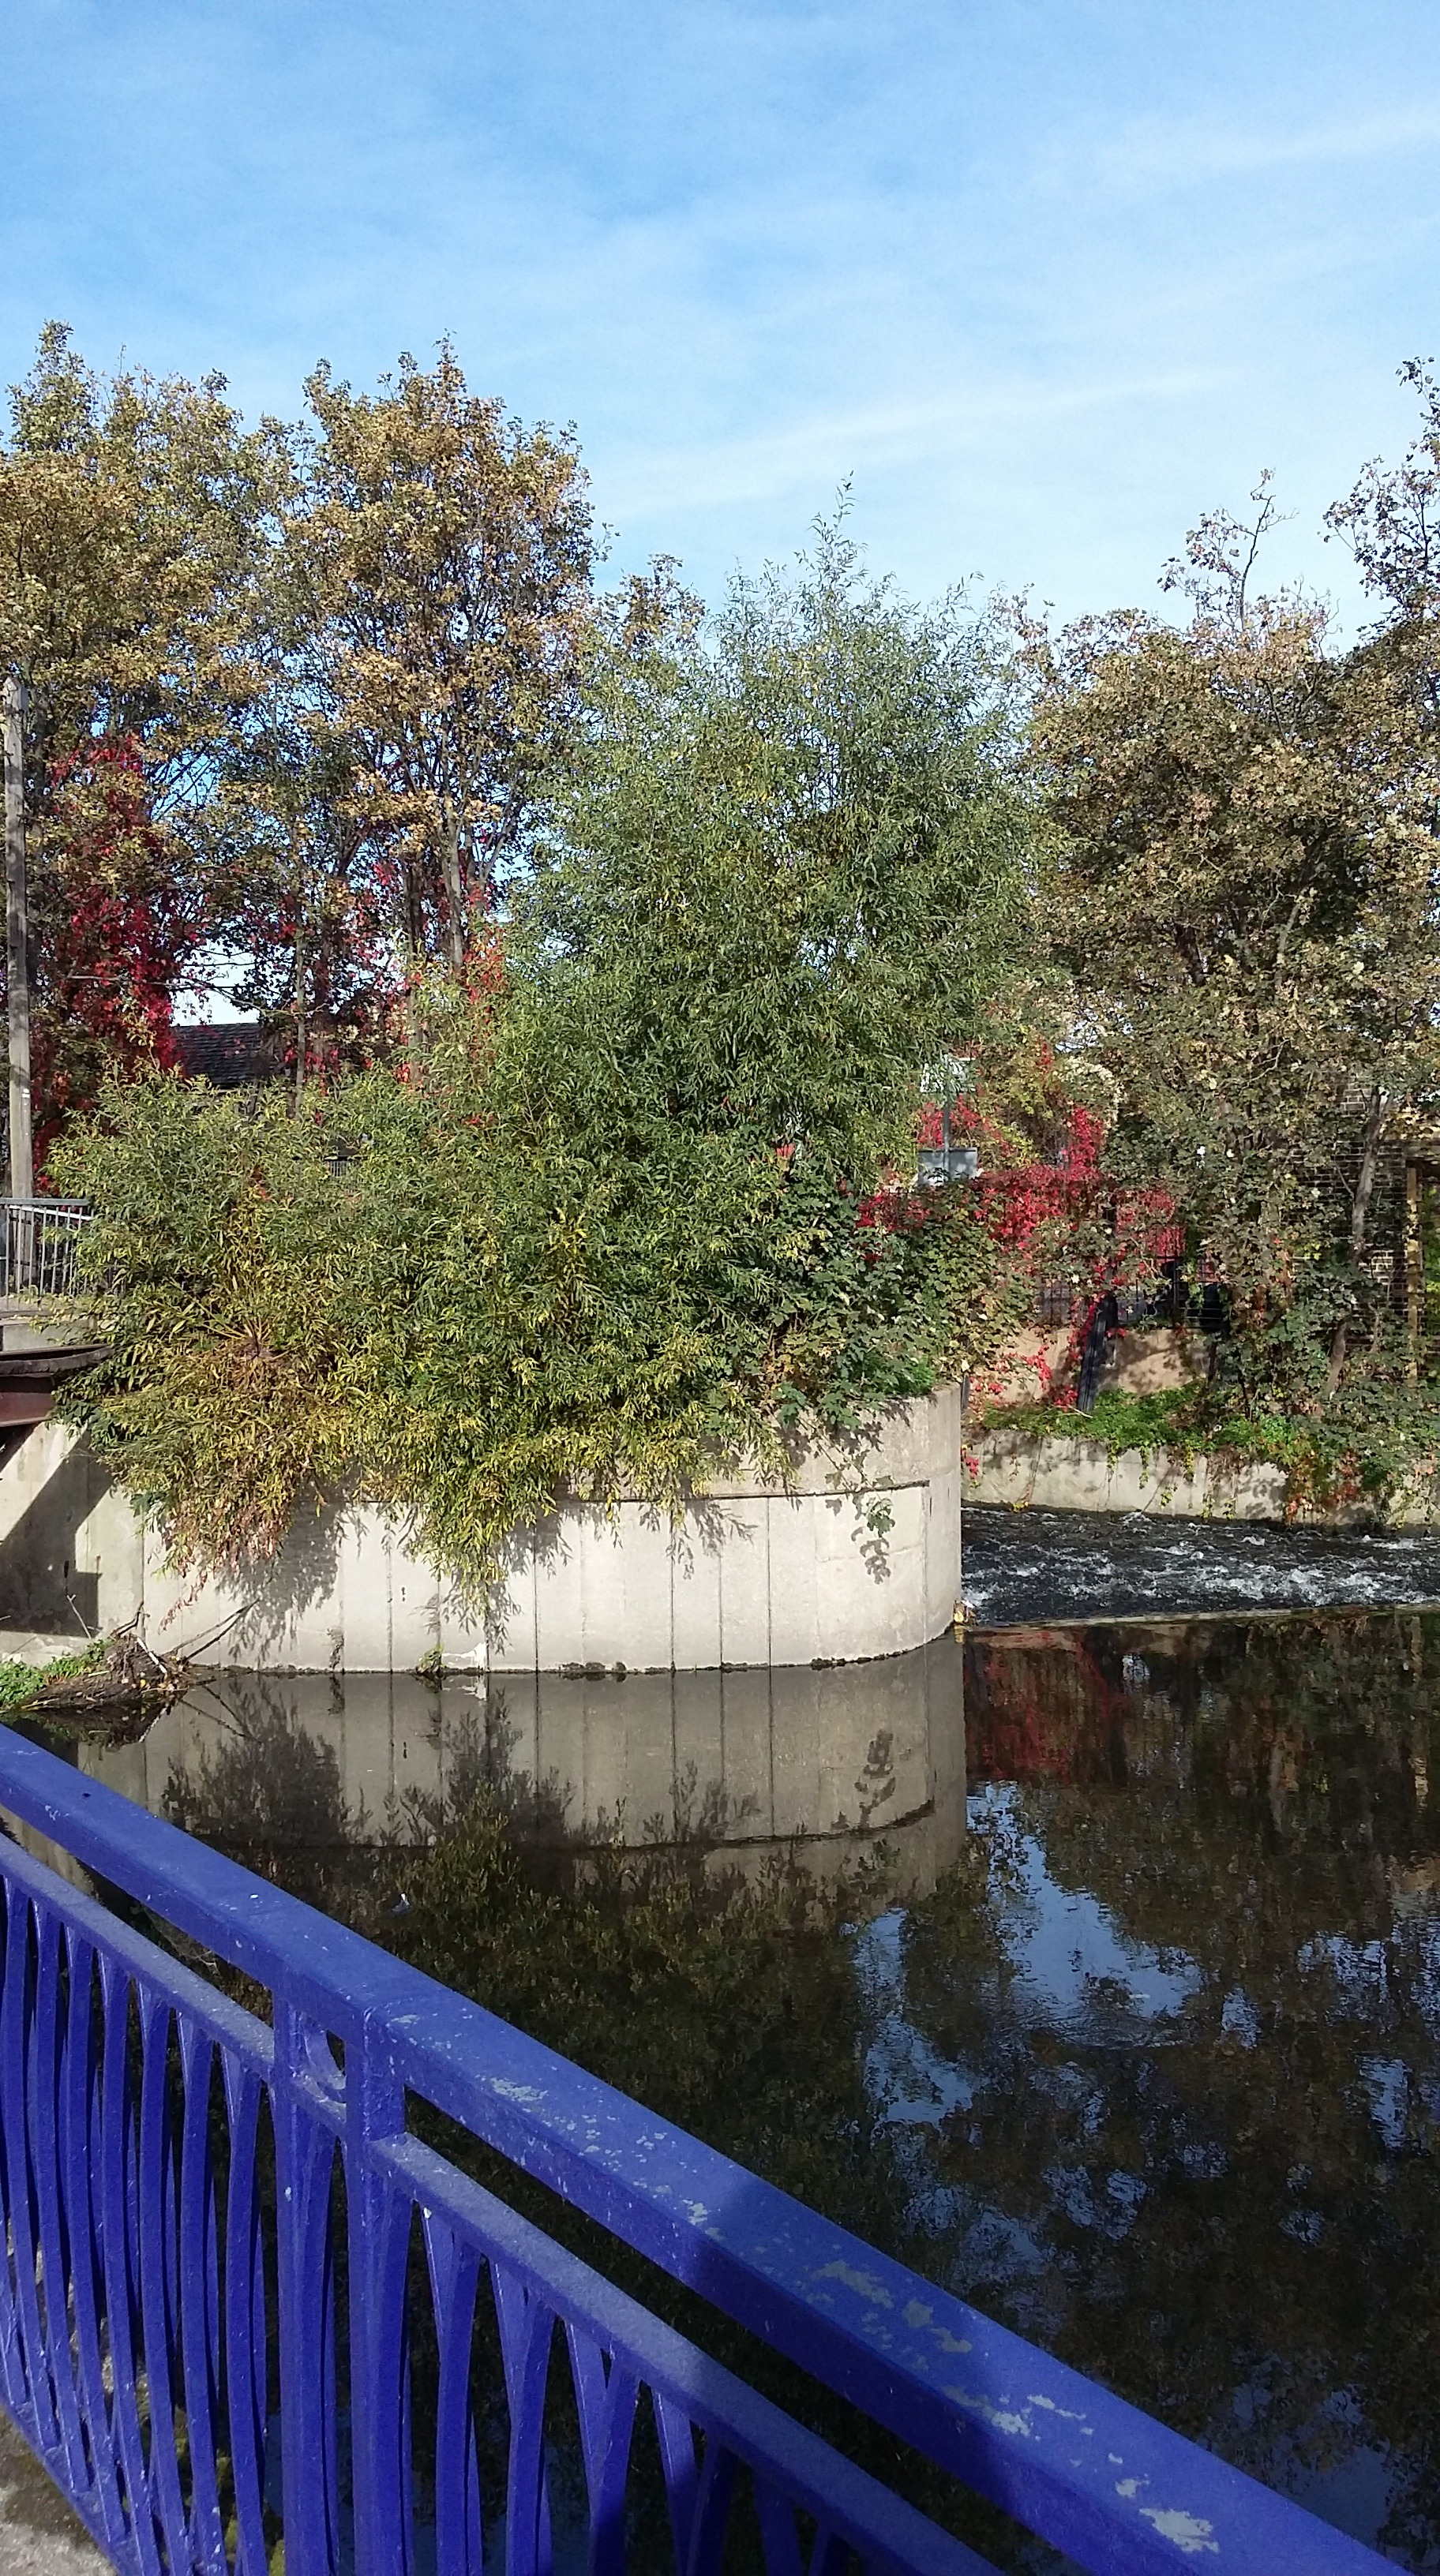 The Wandle in Earlsfield